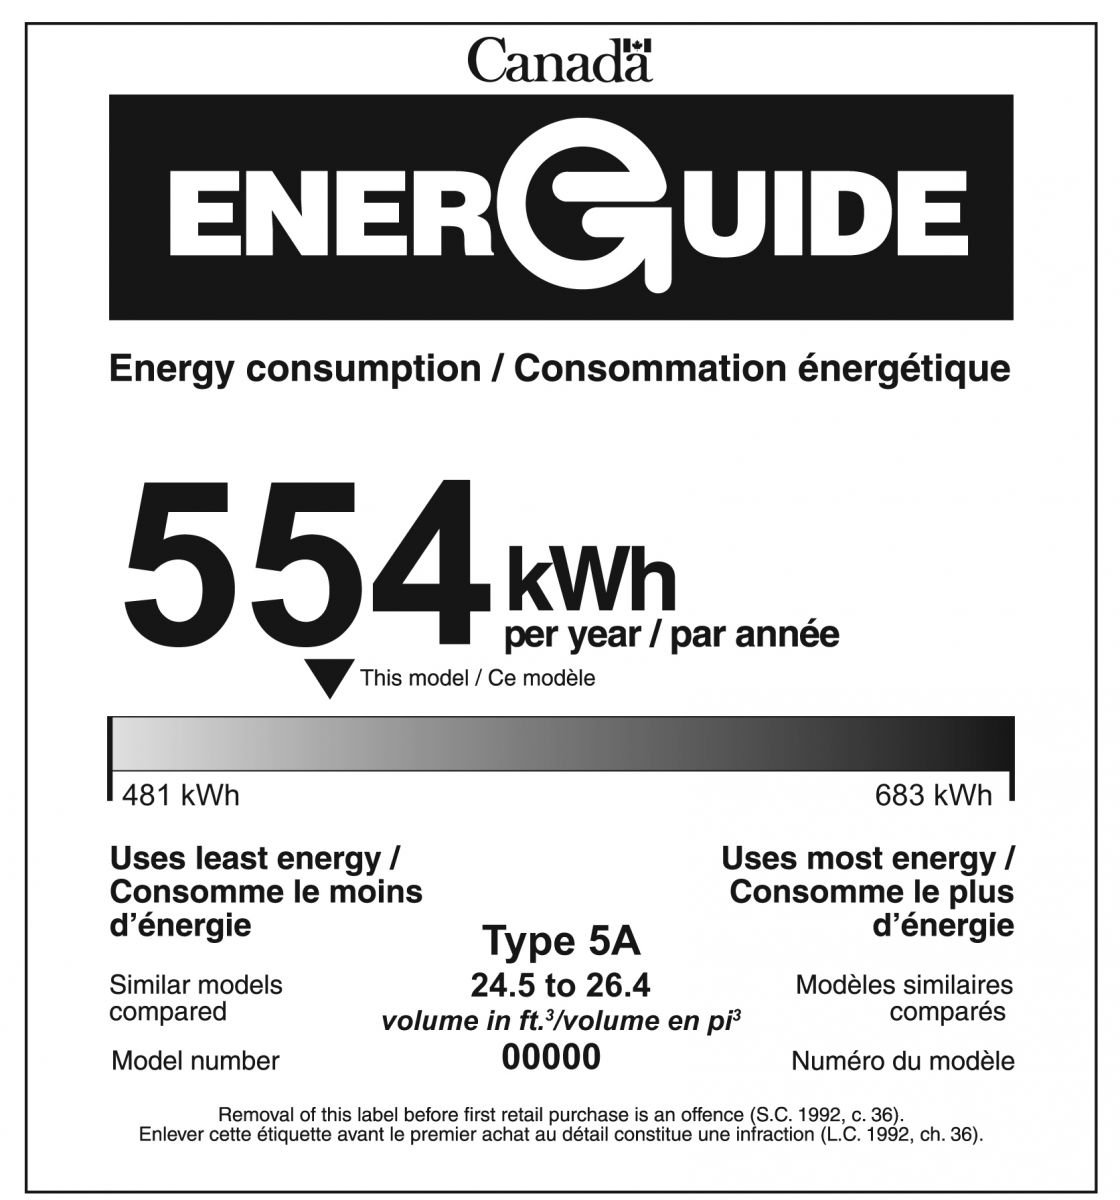 government of canada energuide energy consumption